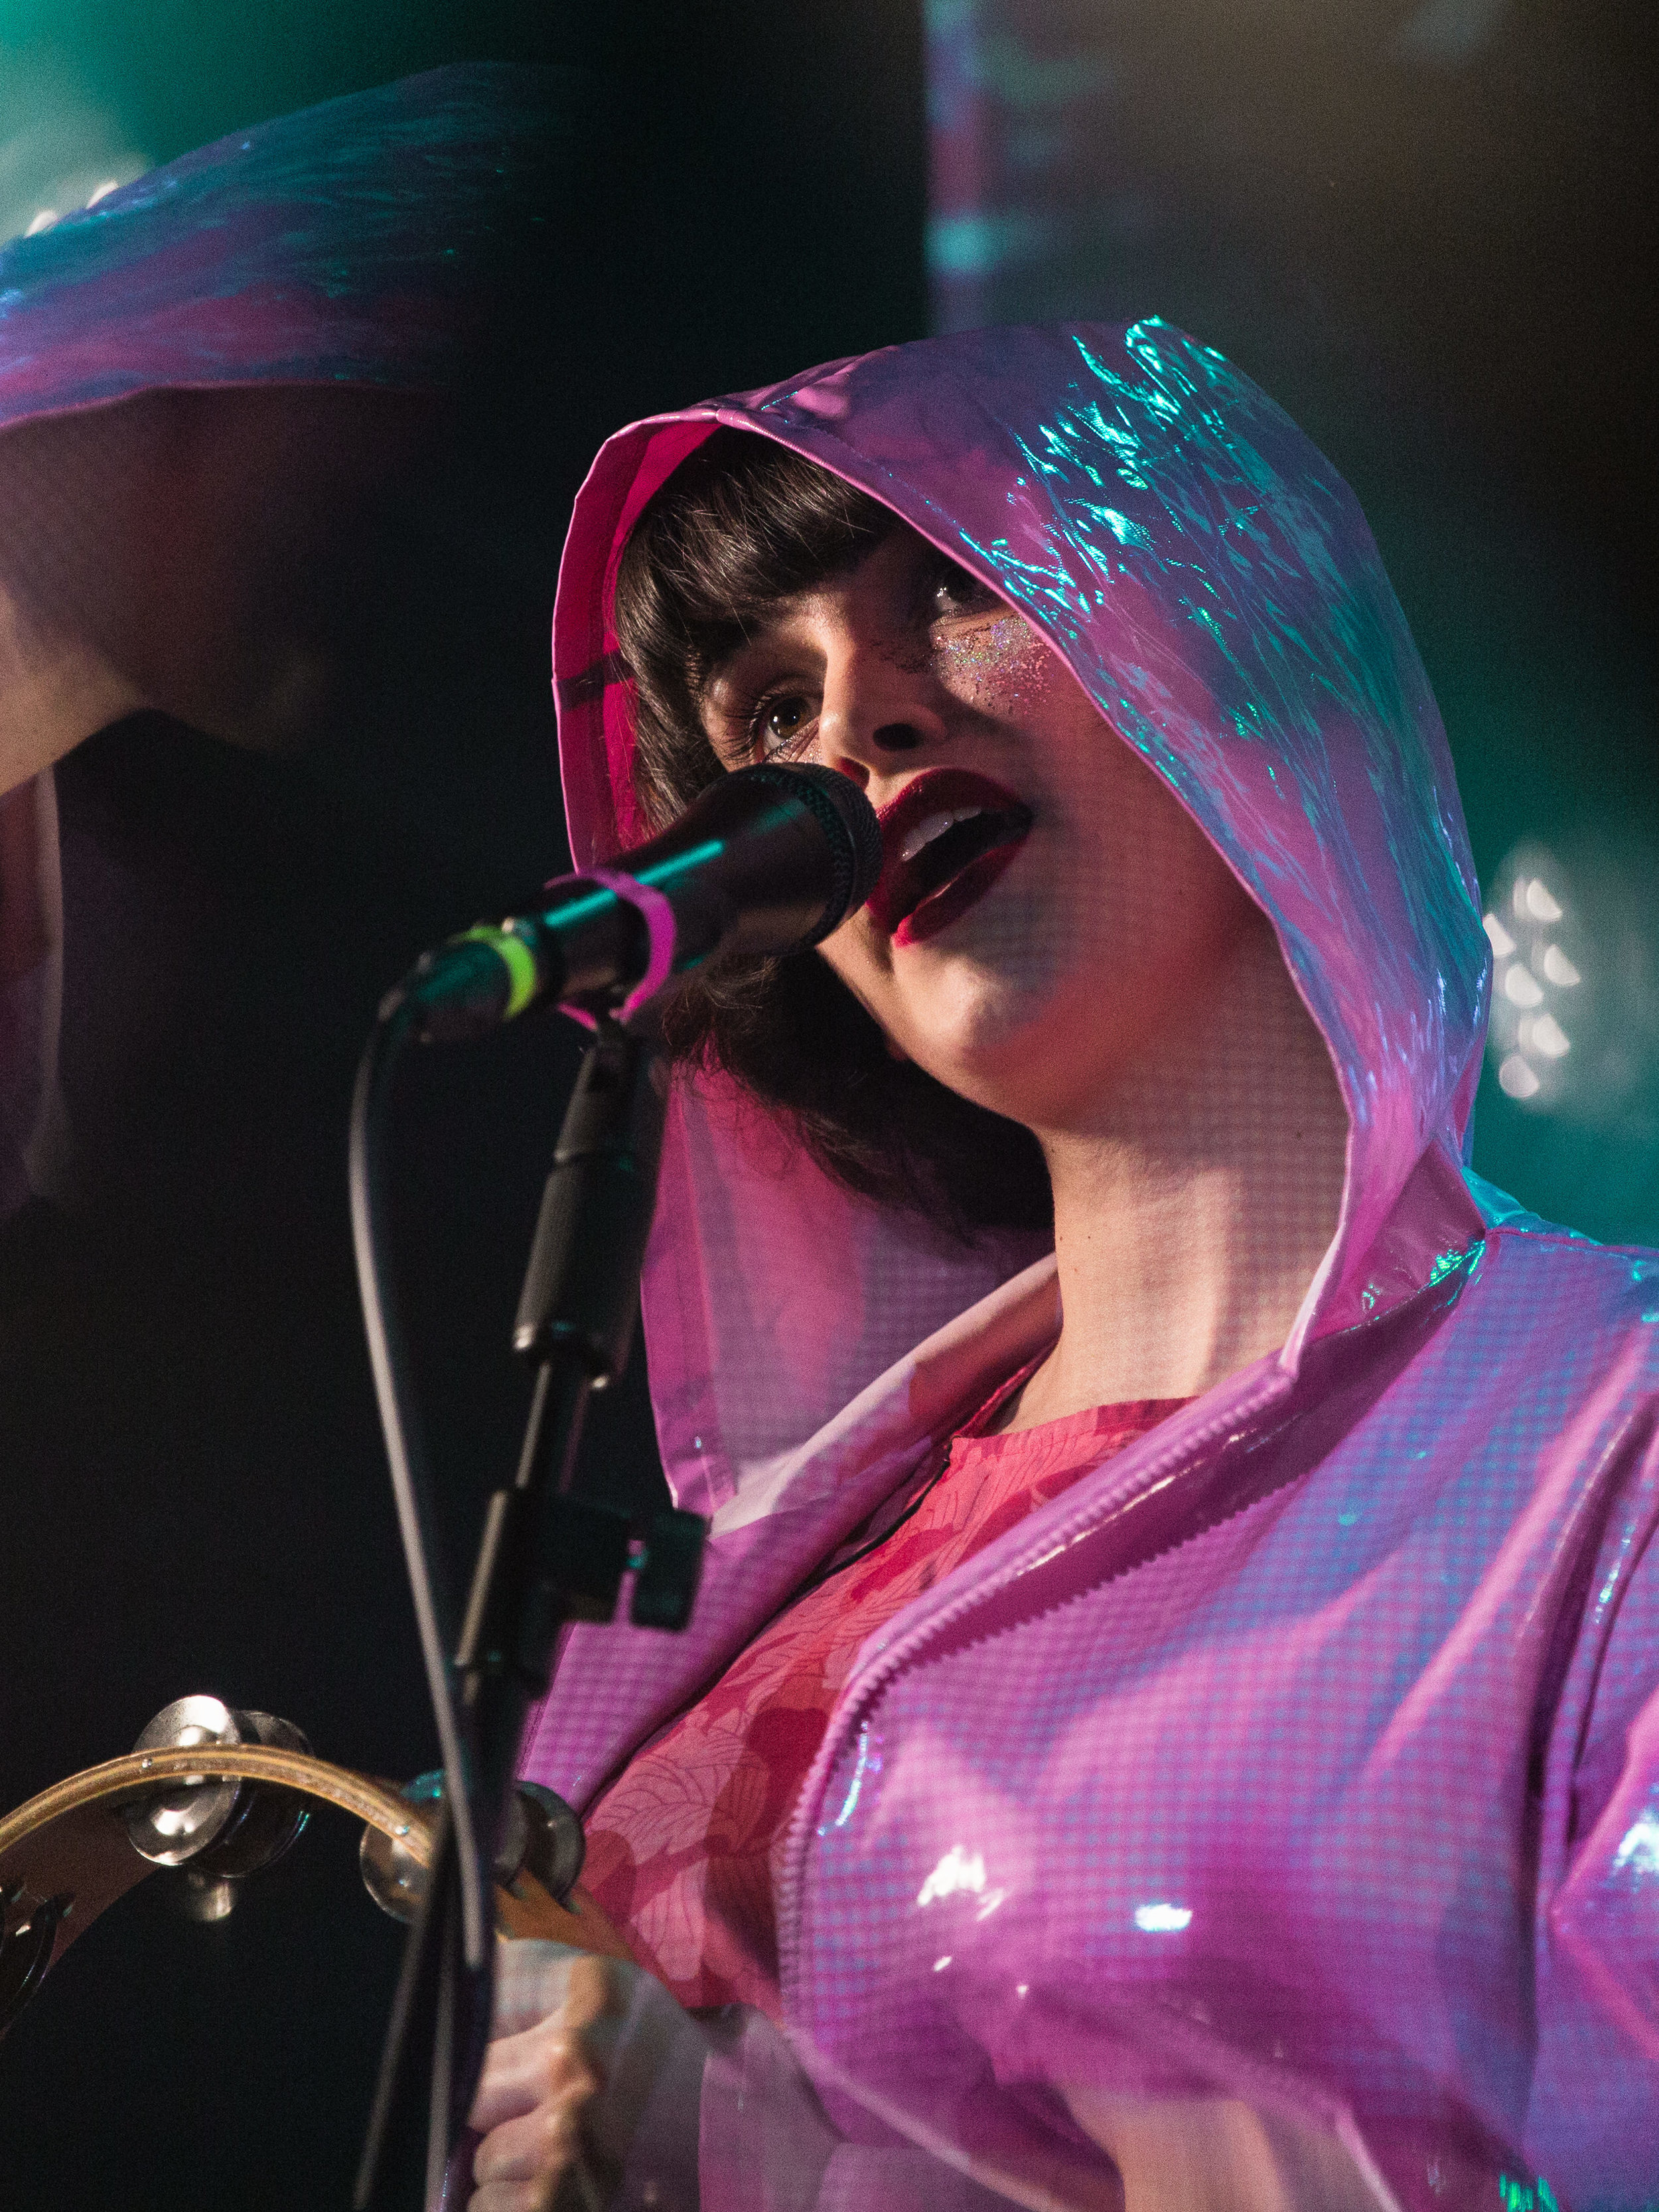 kirby-gladstein-photography-superorganism-concert-moroccan-lounge-los-angeles-2